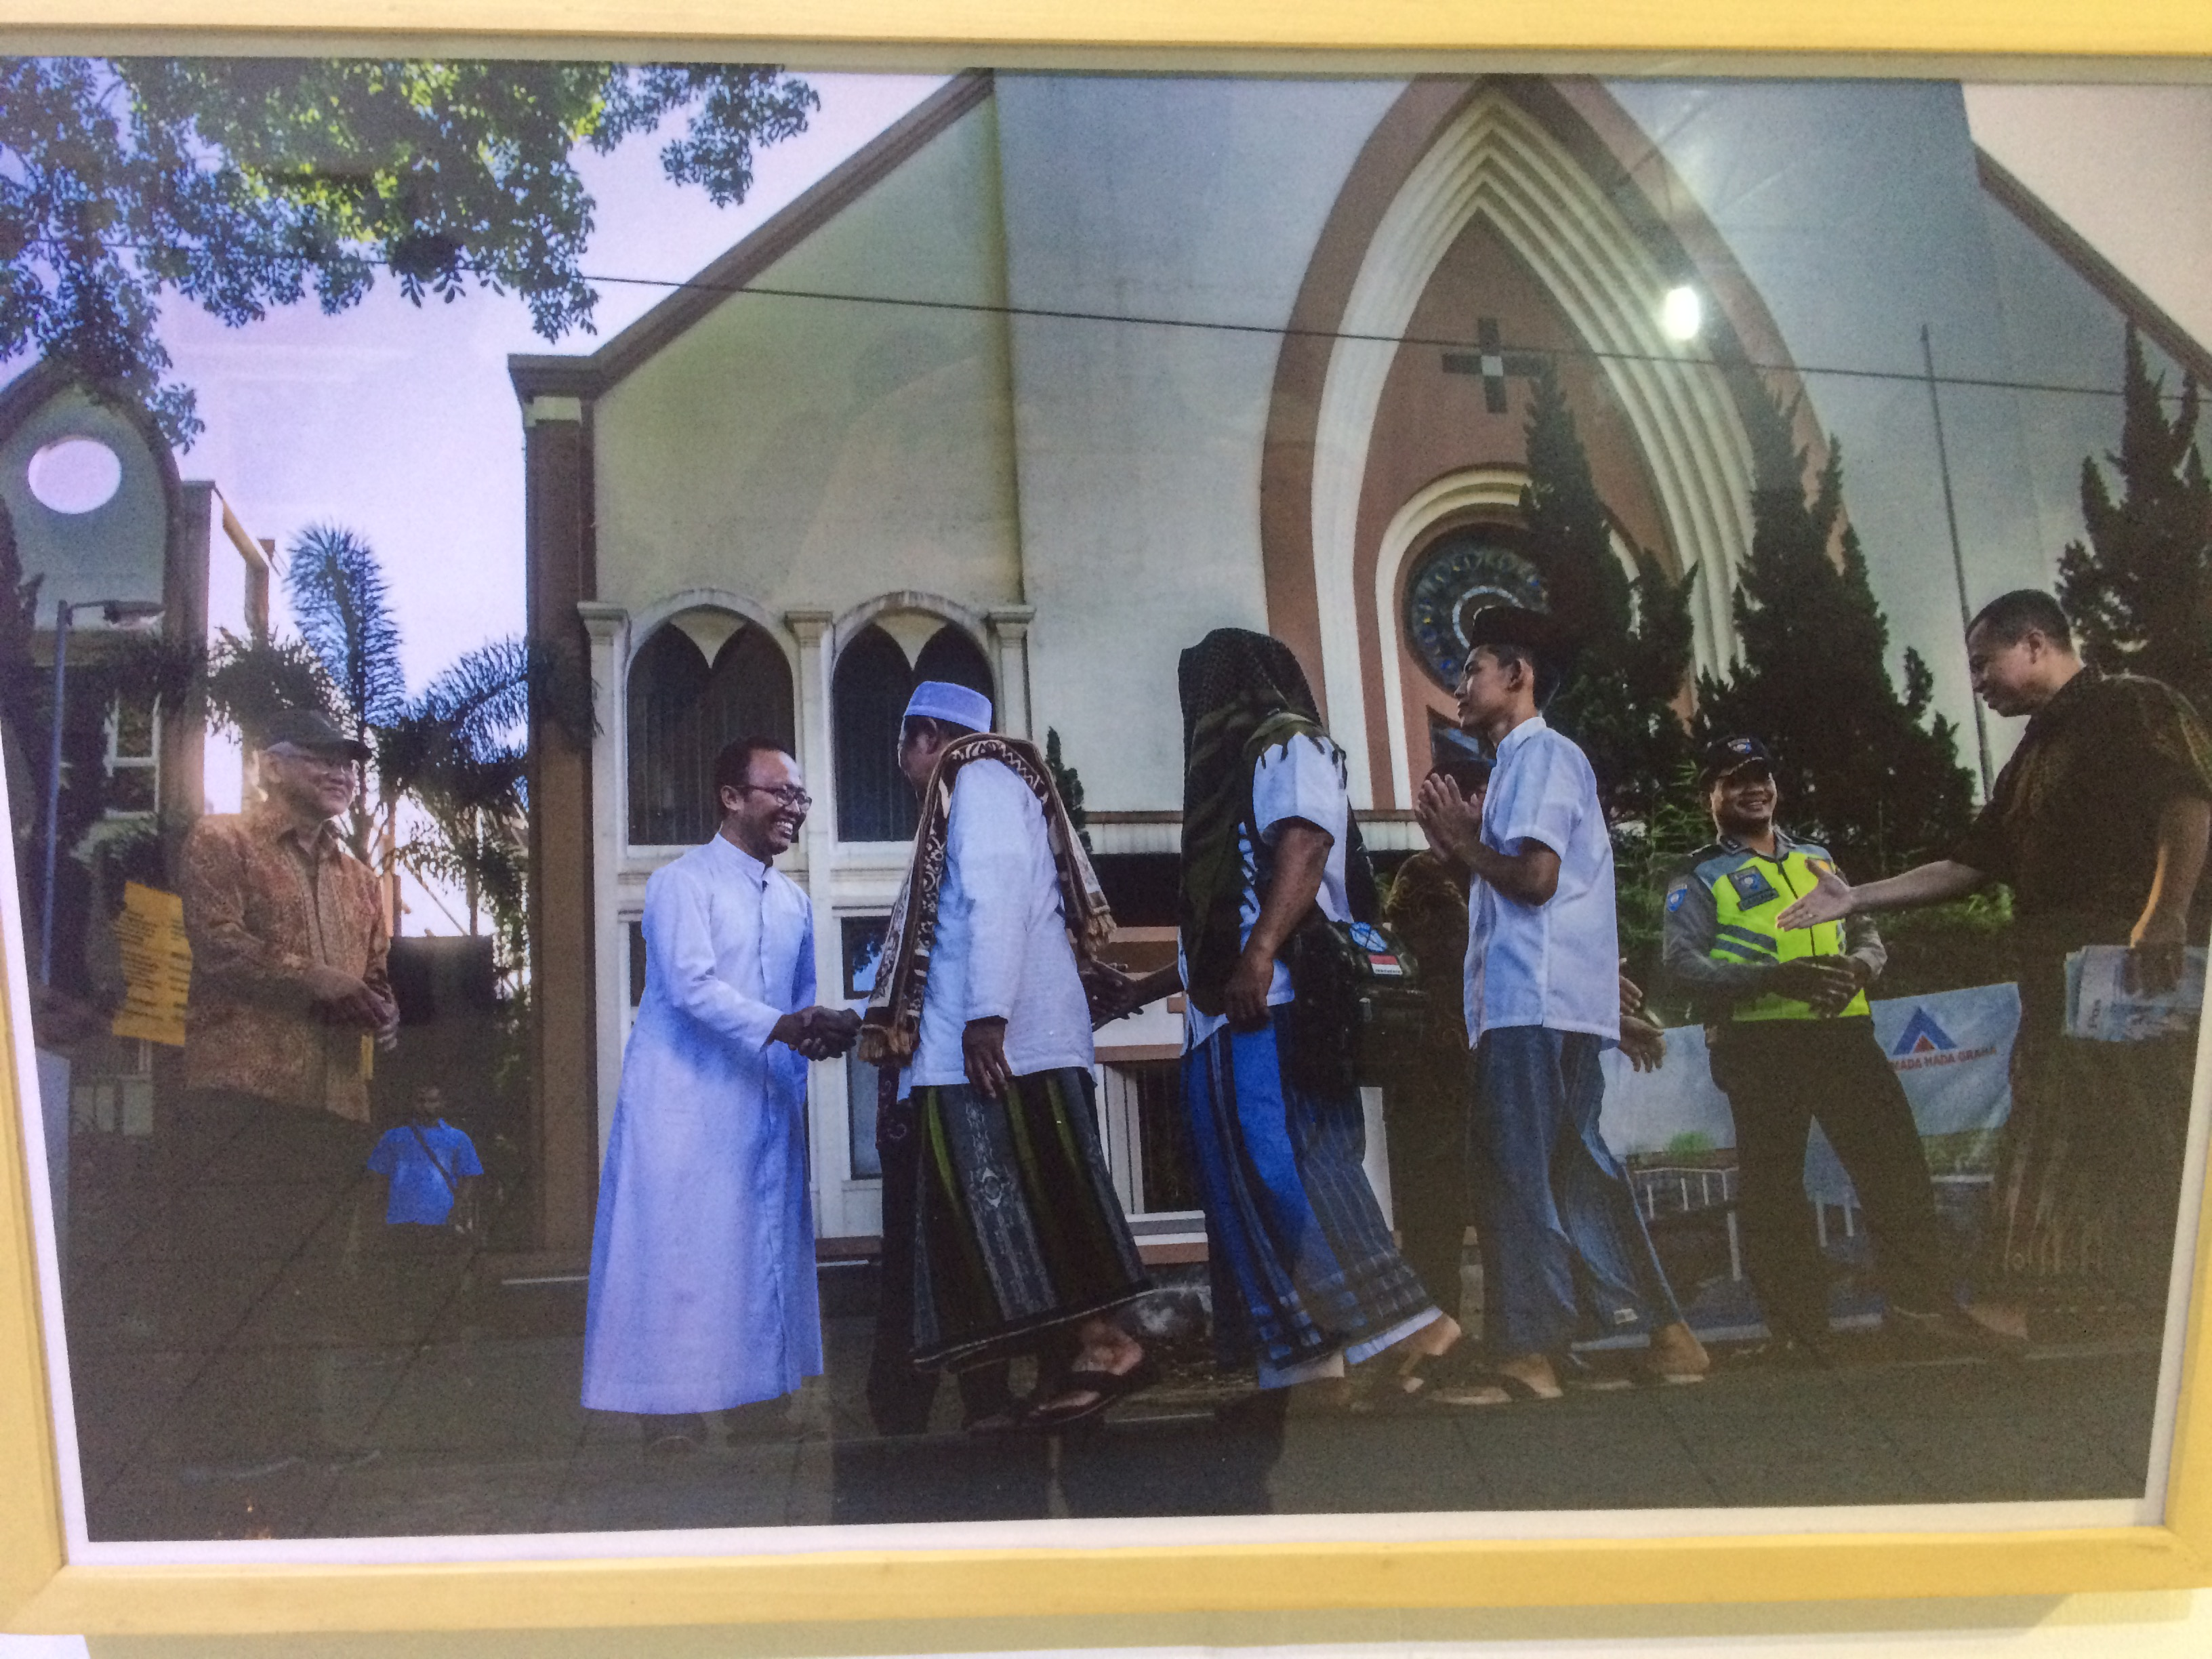 One of several photos in the exhibit portraying religious diversity in Indonesia.